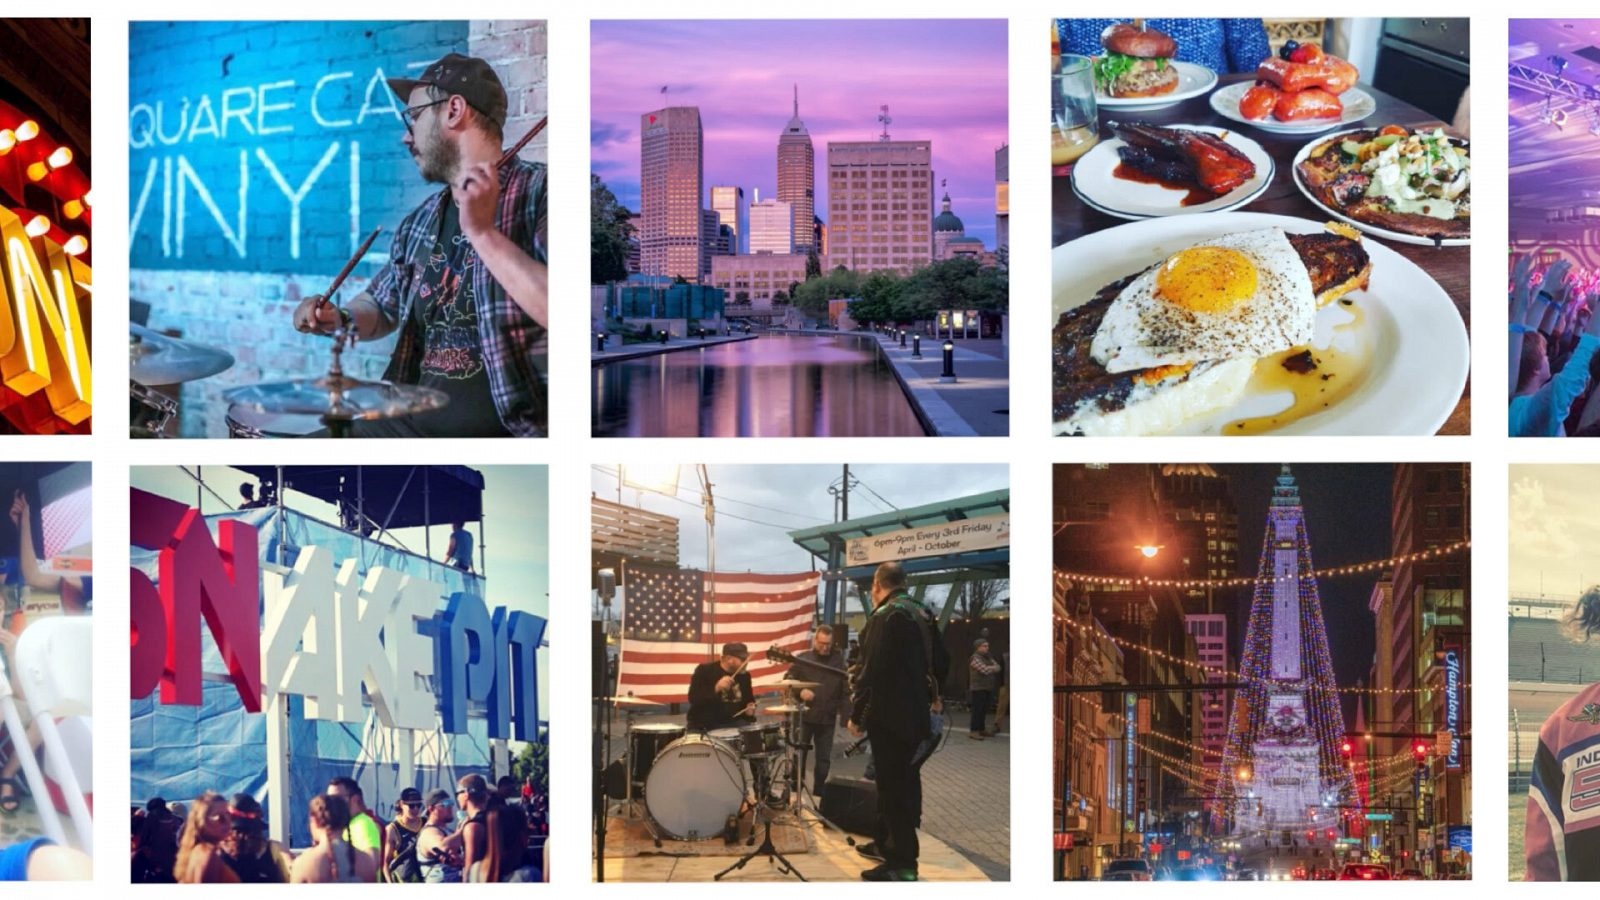 A collage of Indy Instagram moments